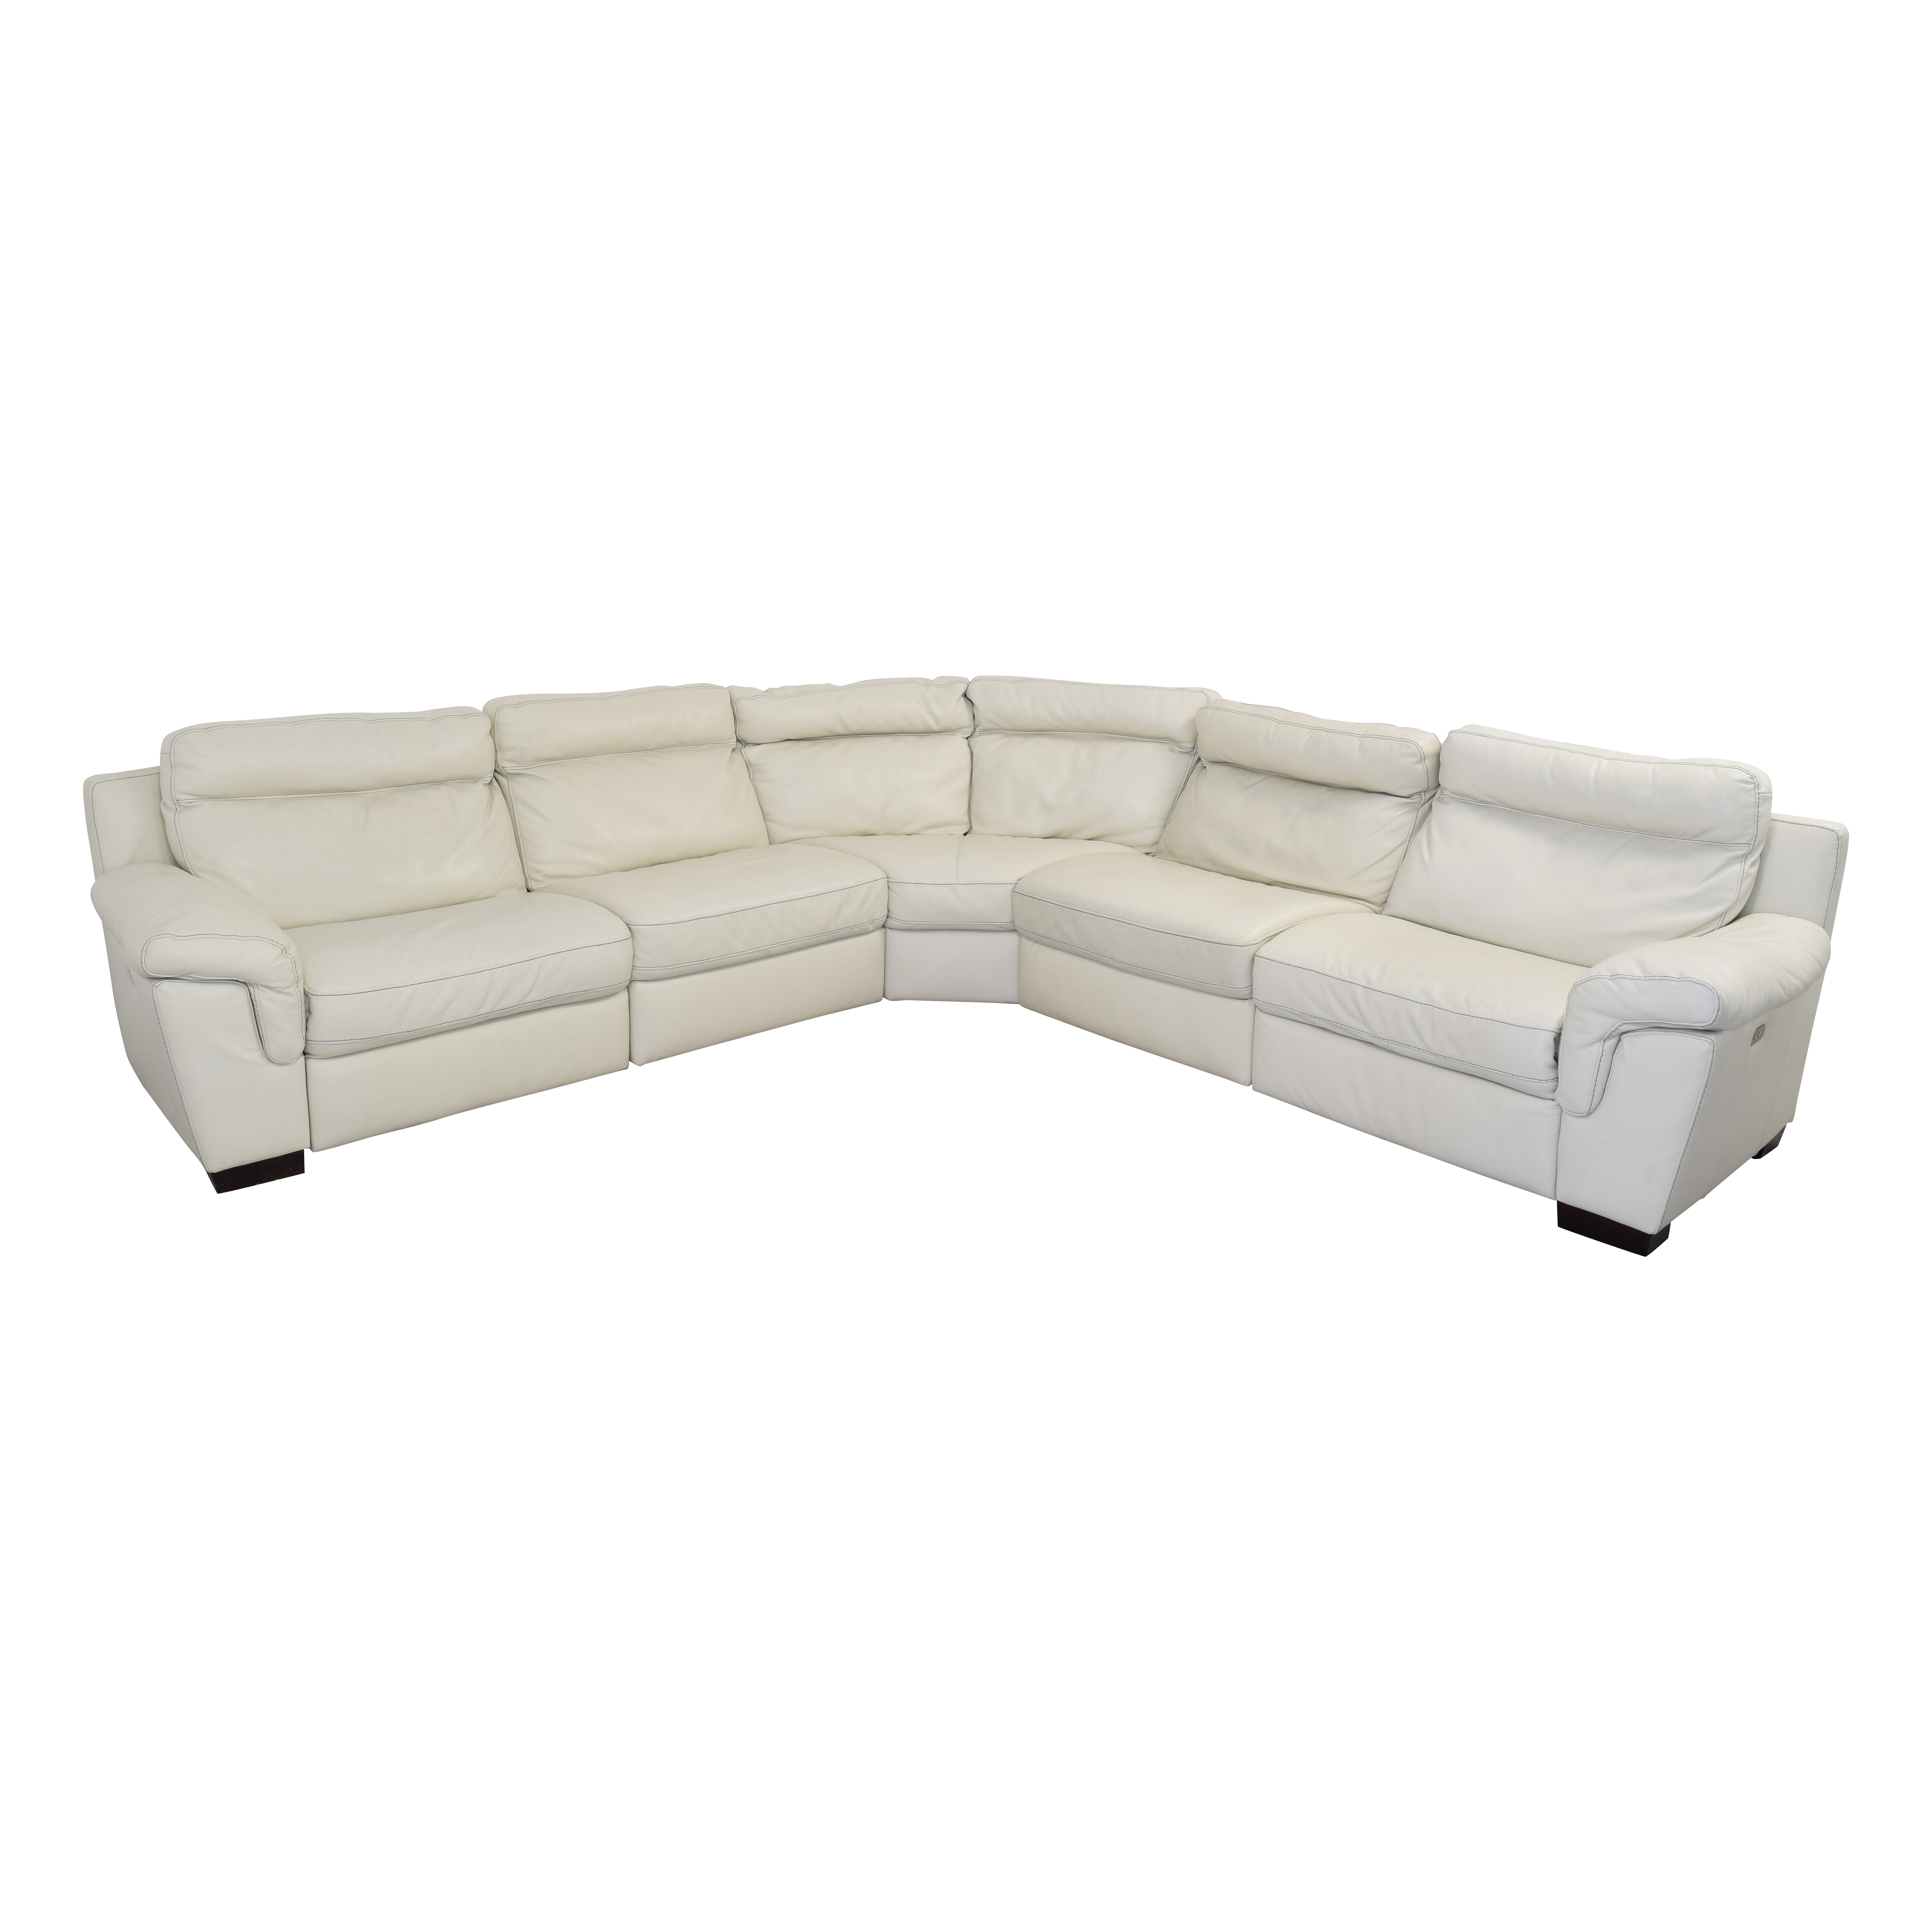 Macy's Leather Sectional Sofa with Reclining Seats sale